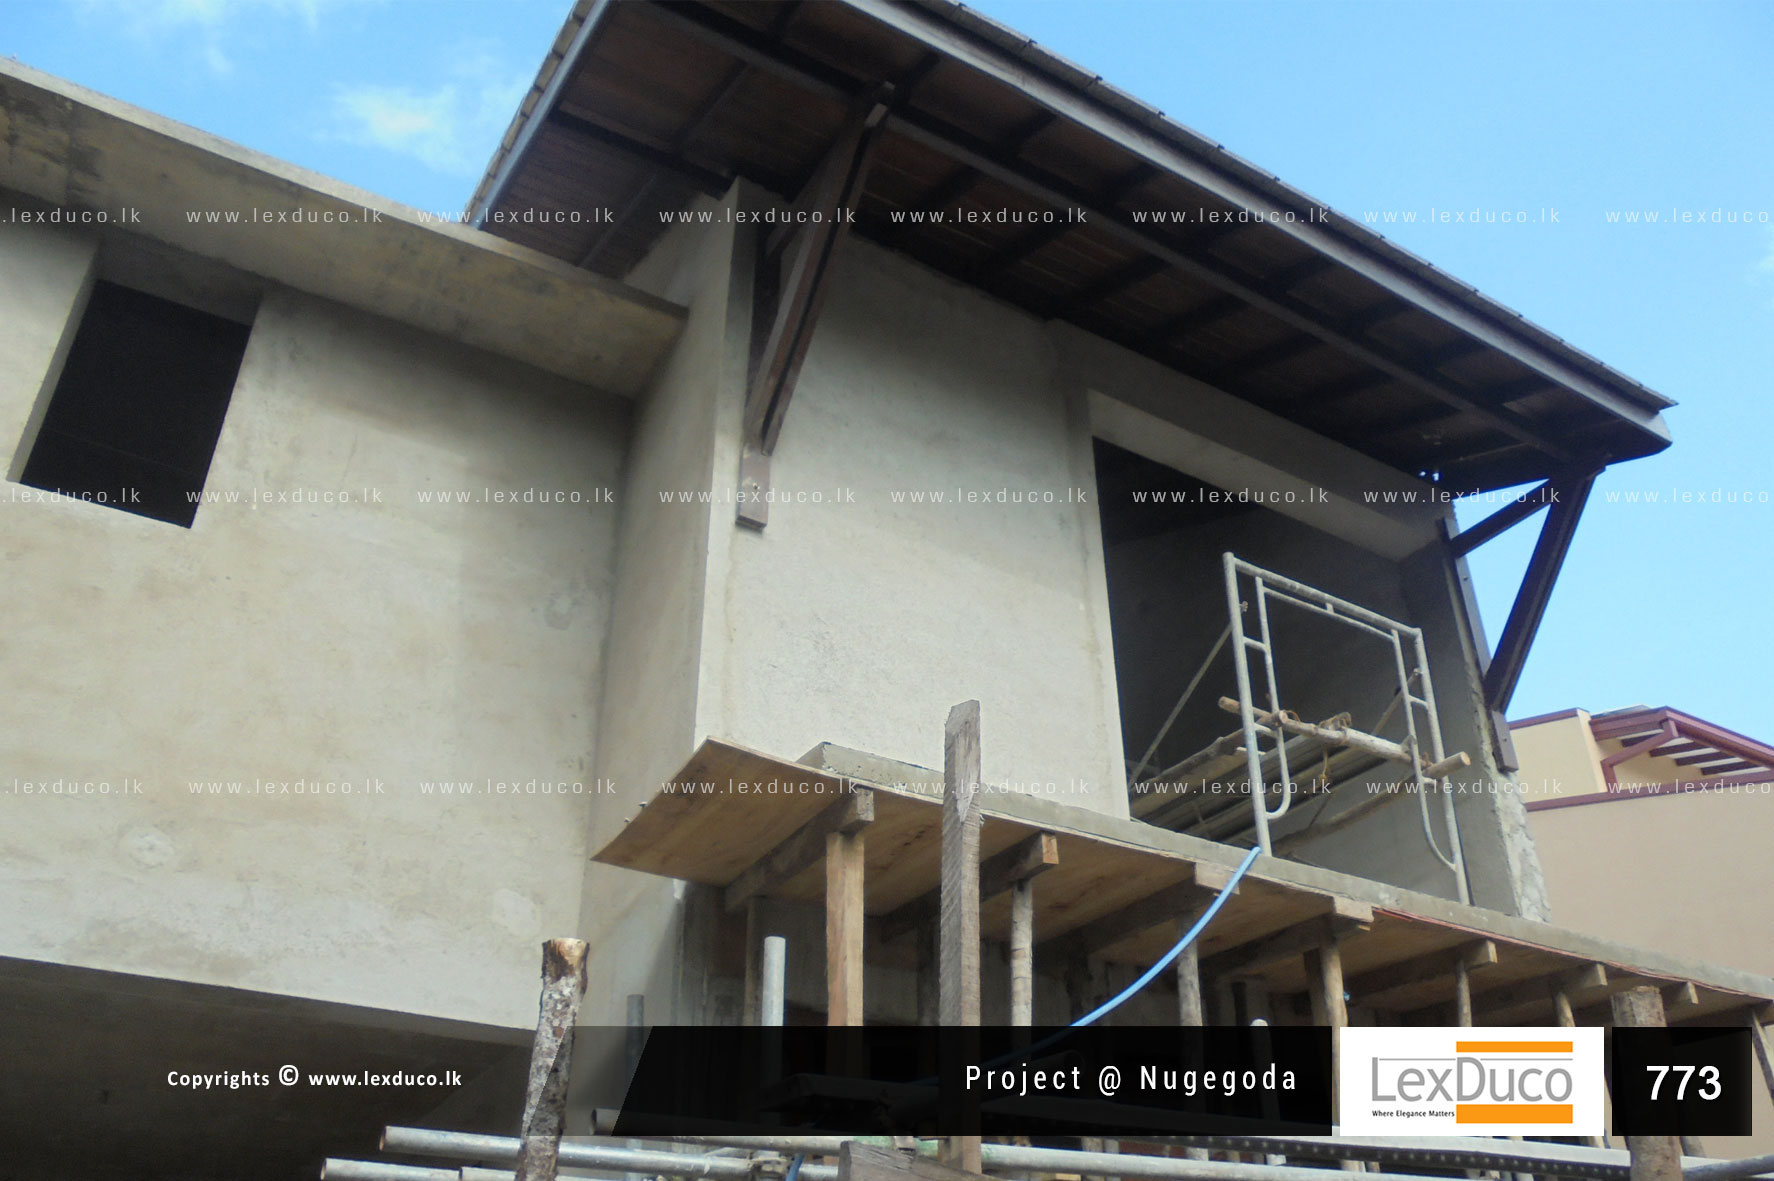 Residential Housing Project at Nugegoda | Lex Duco